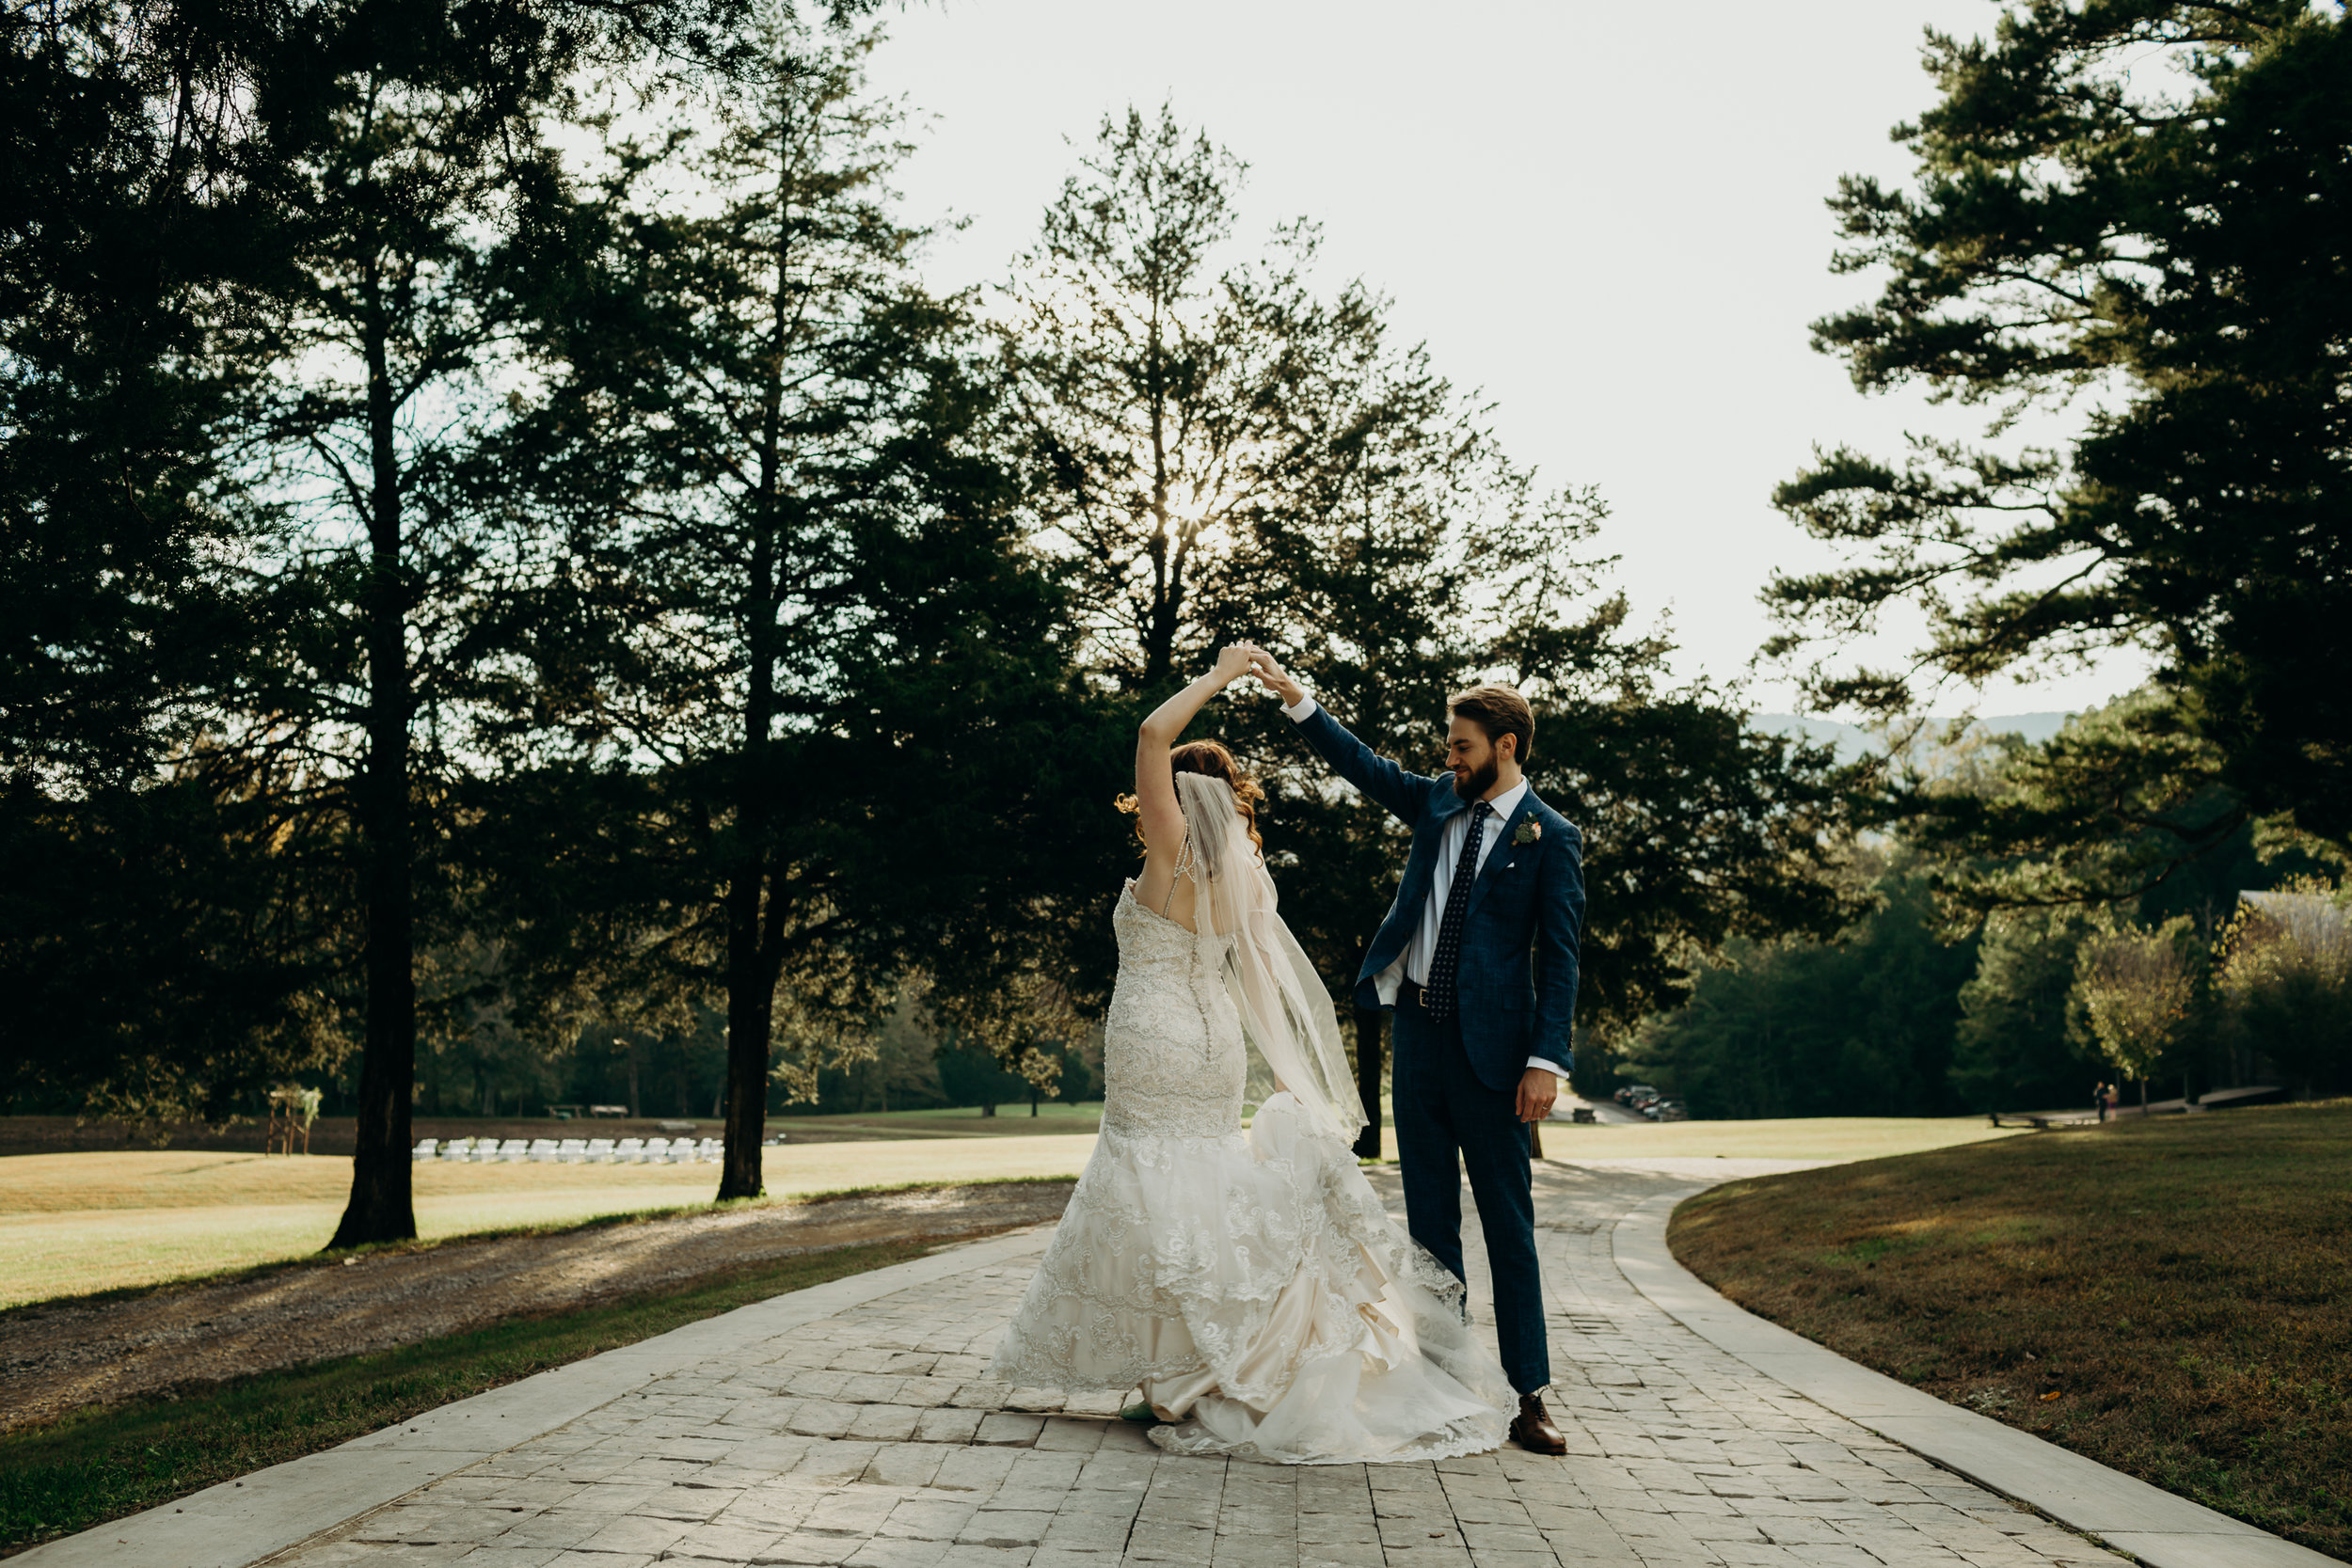 Gianna Keiko Atlanta Chattanooga Destination Wedding Portrait Photographer-71.jpg